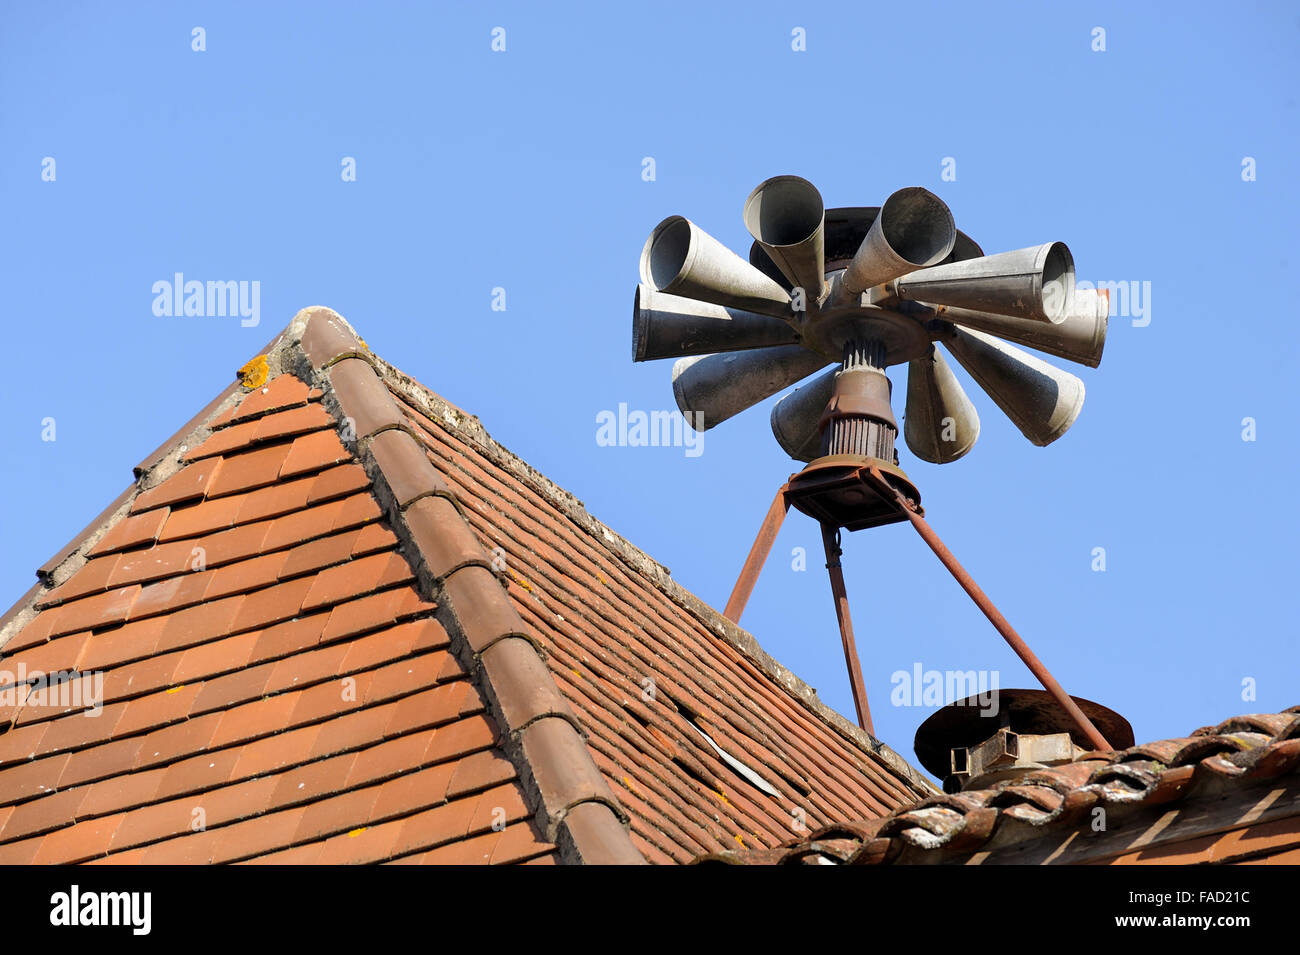 Siren at rooftop to inform public in dangerous situations - Stock Image